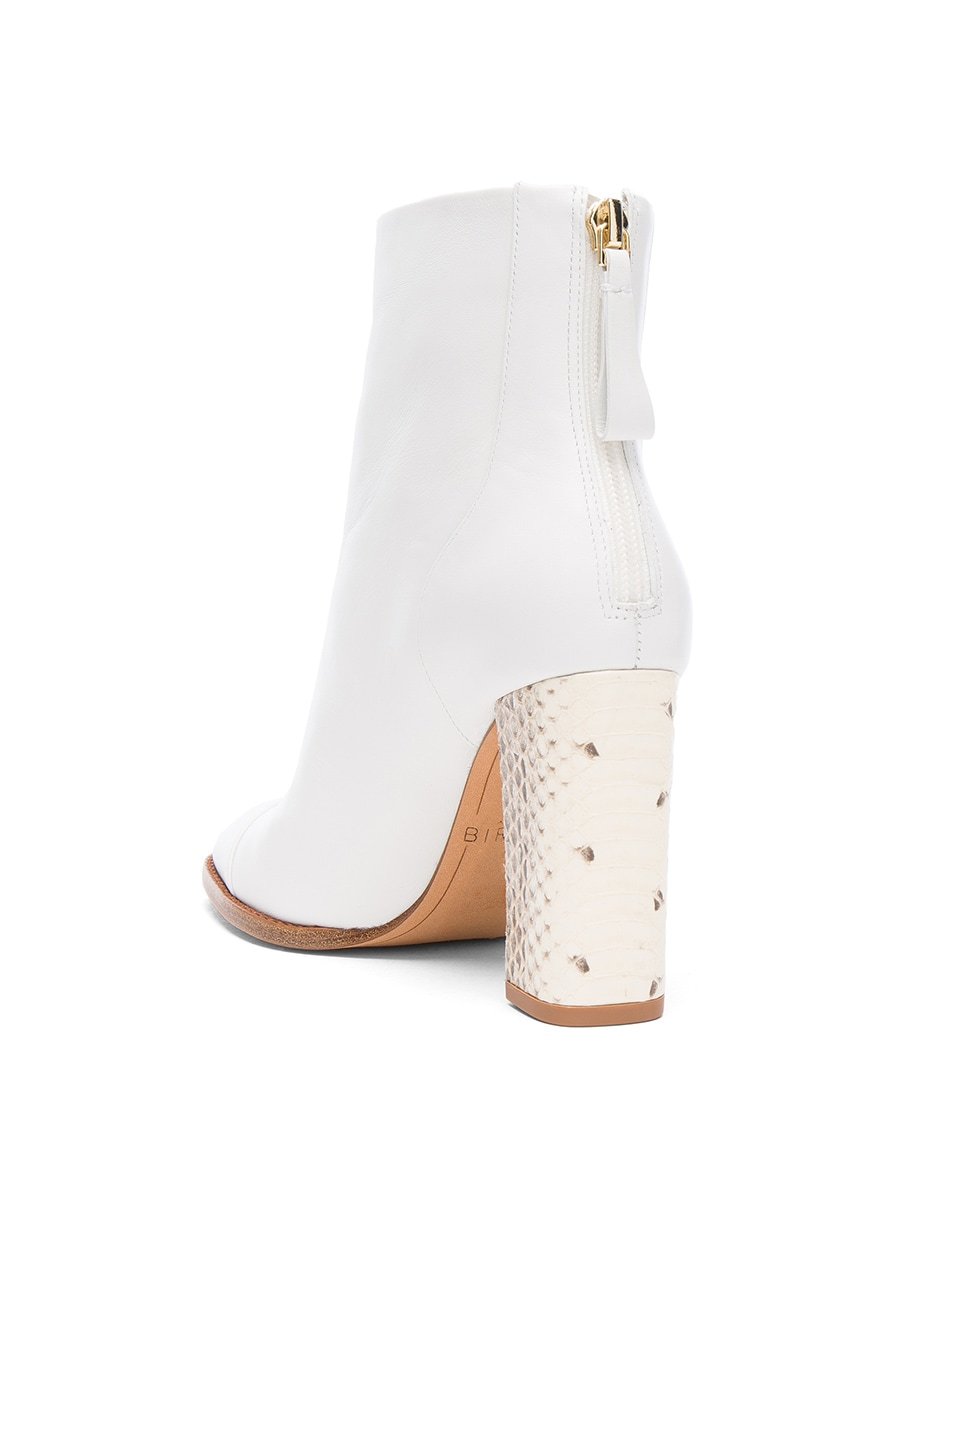 Image 3 of Alexandre Birman Leather Bibiana Watersnake Booties in White & Natural